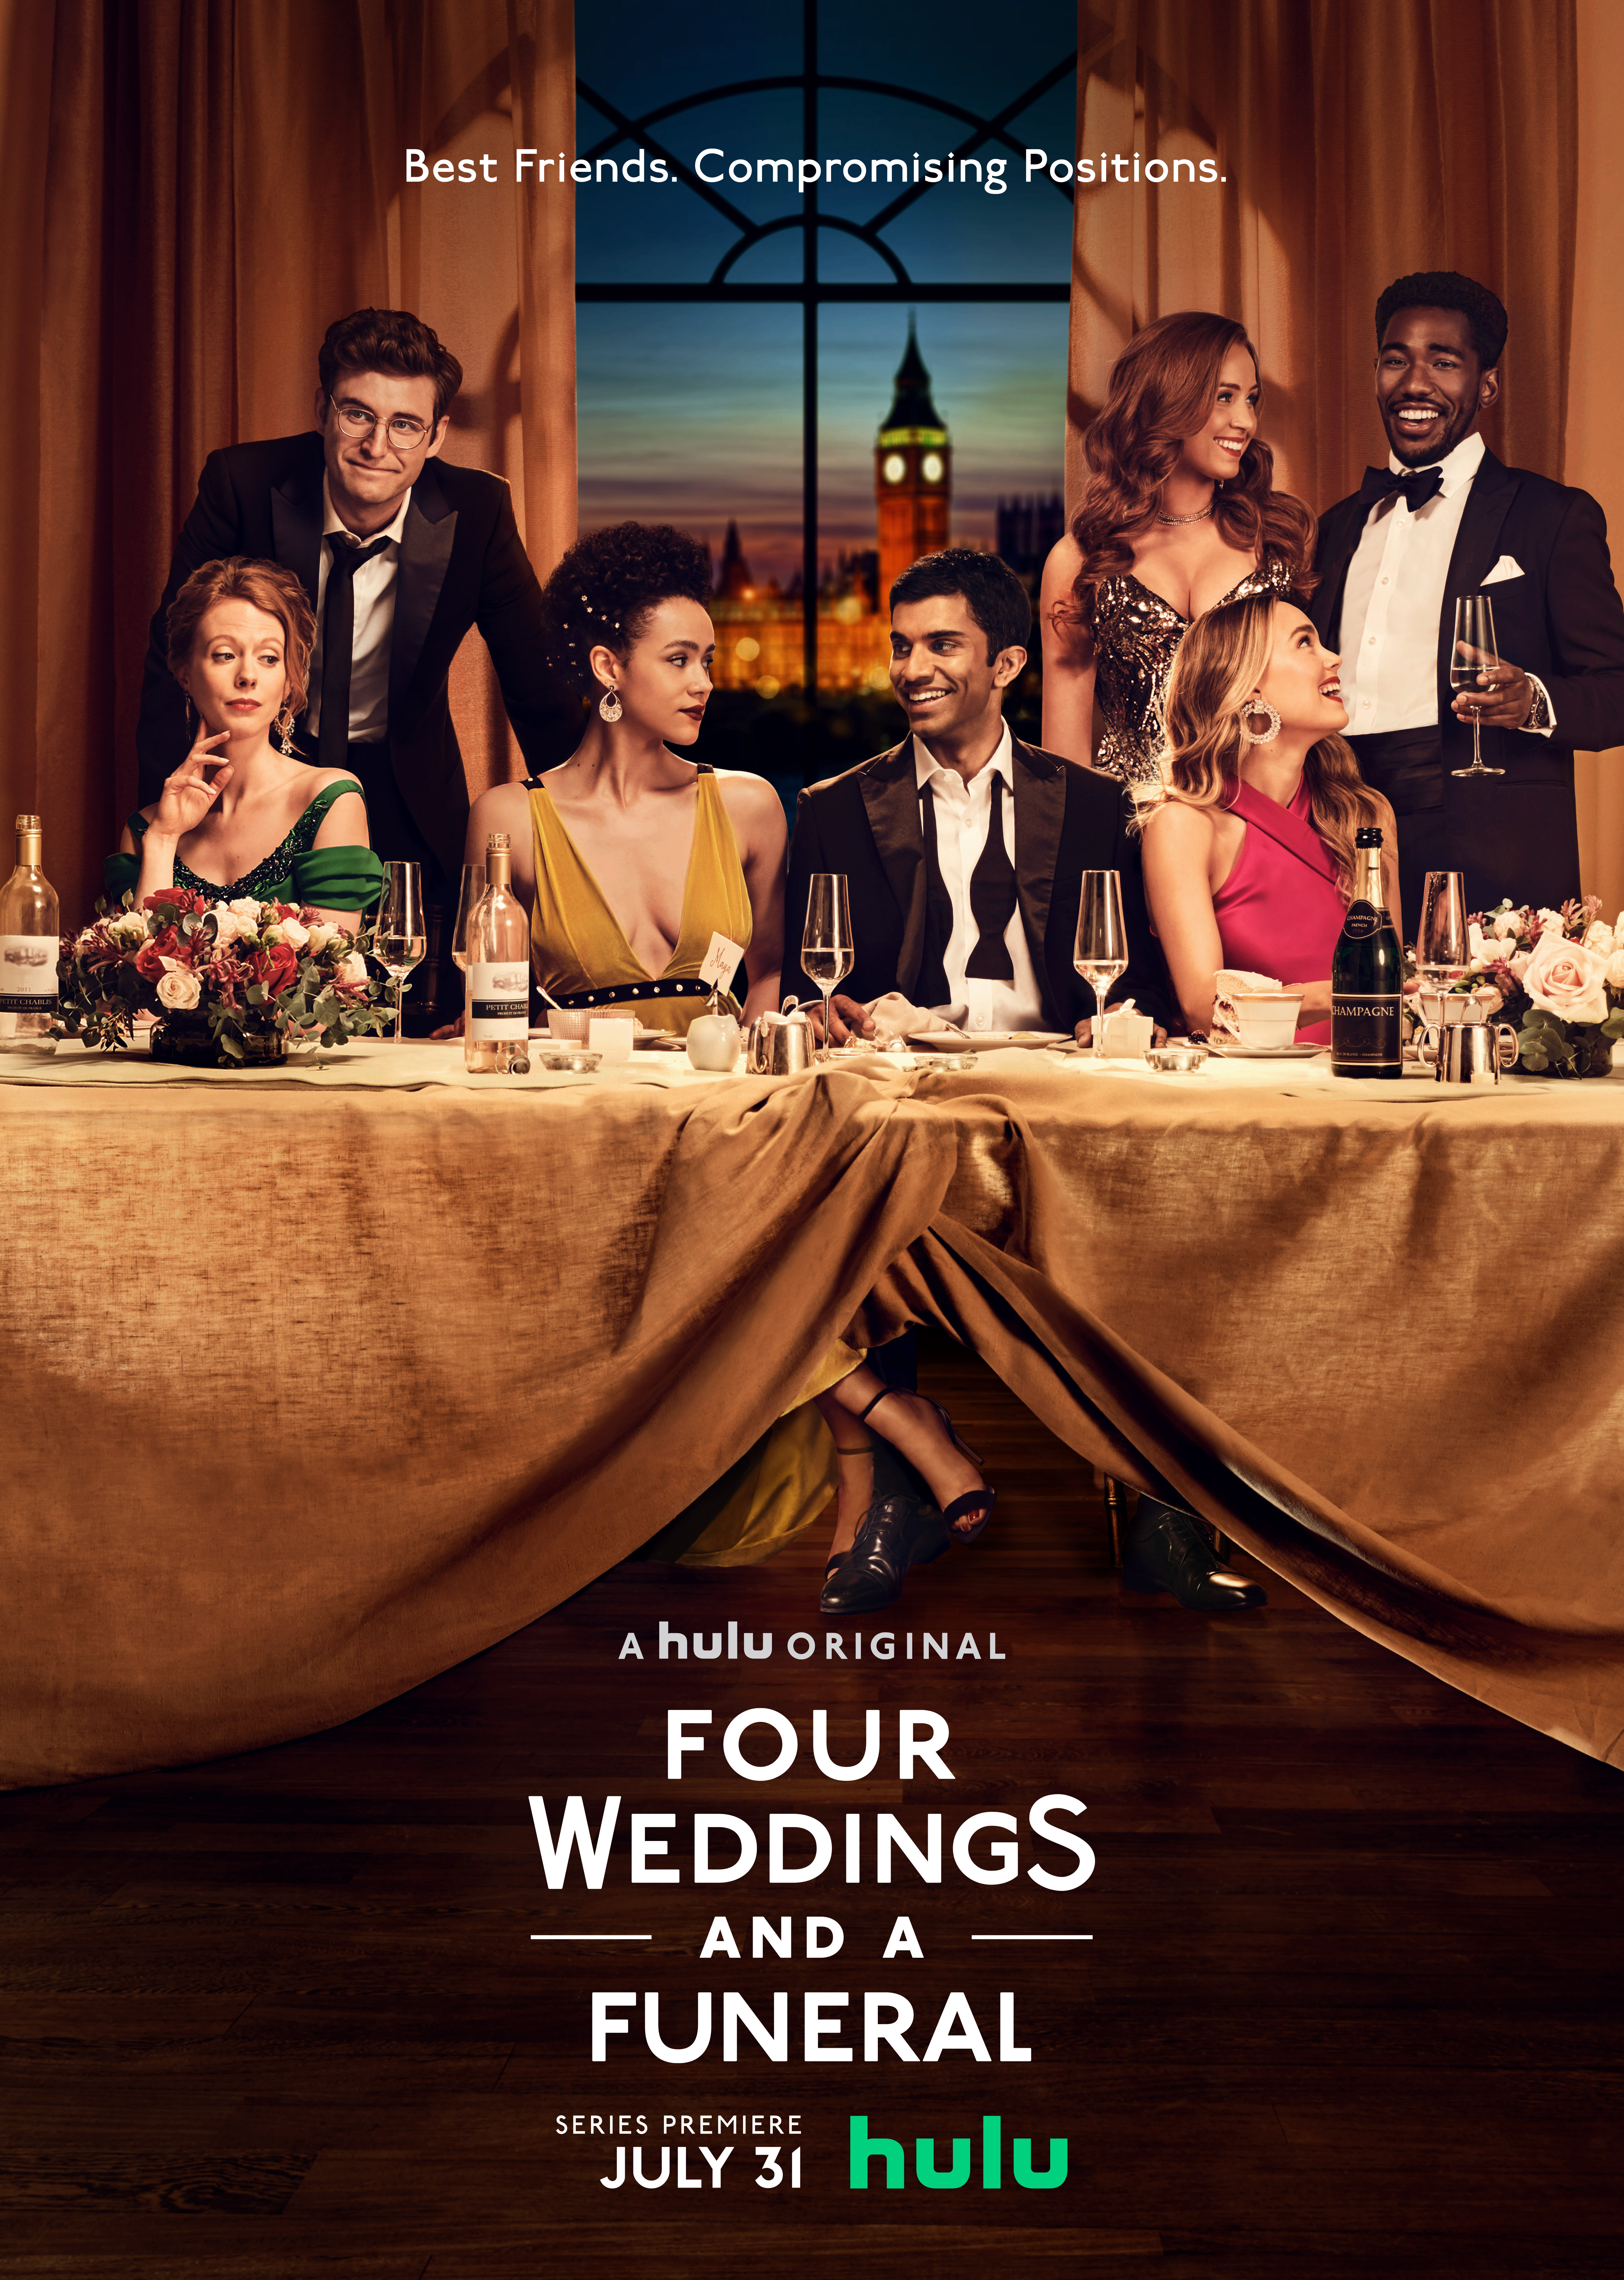 'Four Weddings and a Funeral' key art. [Hulu]